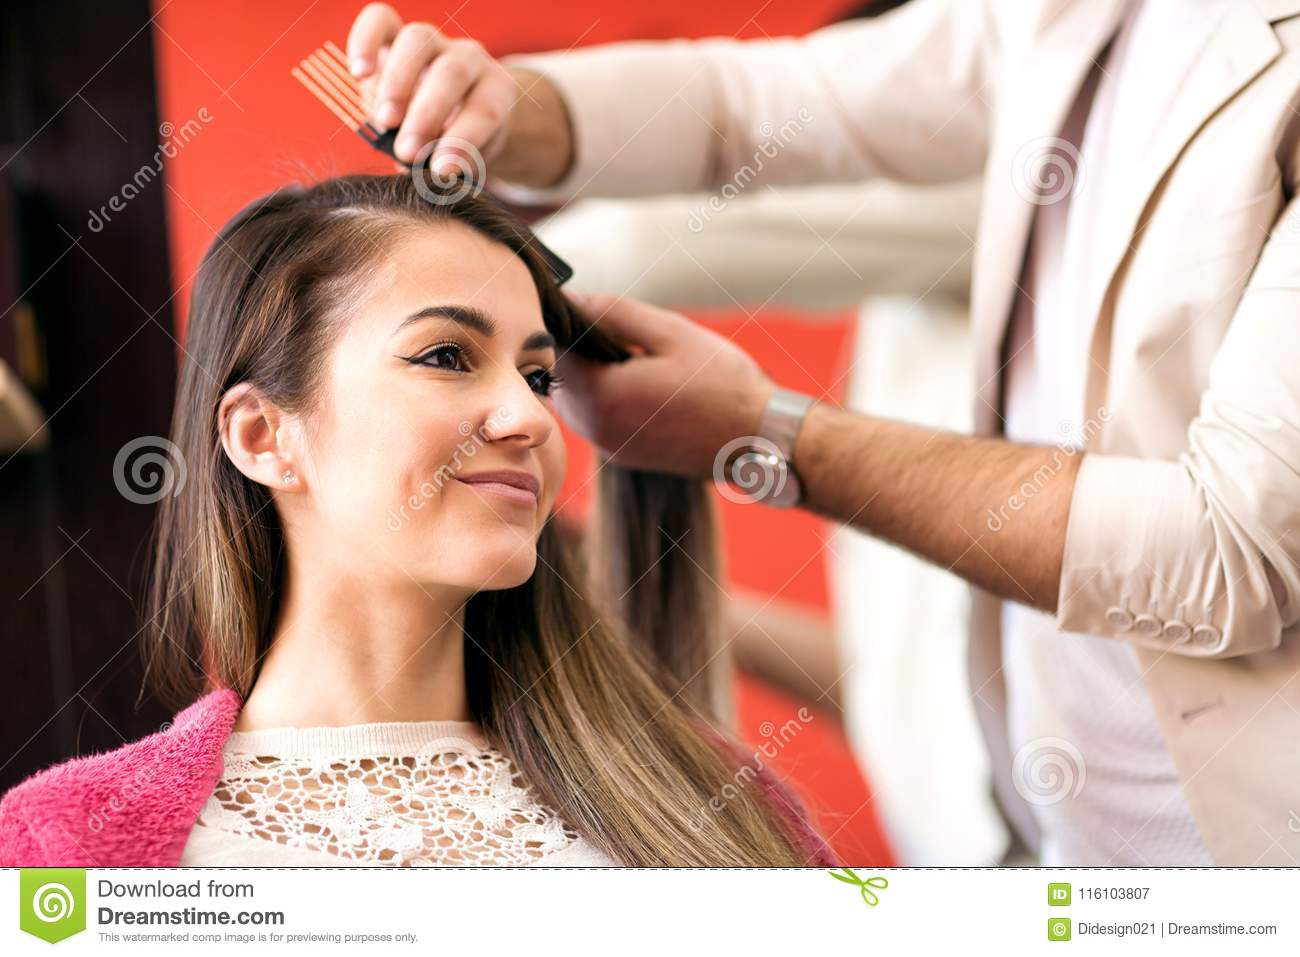 Portrait Of Beautiful Young Woman Getting Haircut Stock Image